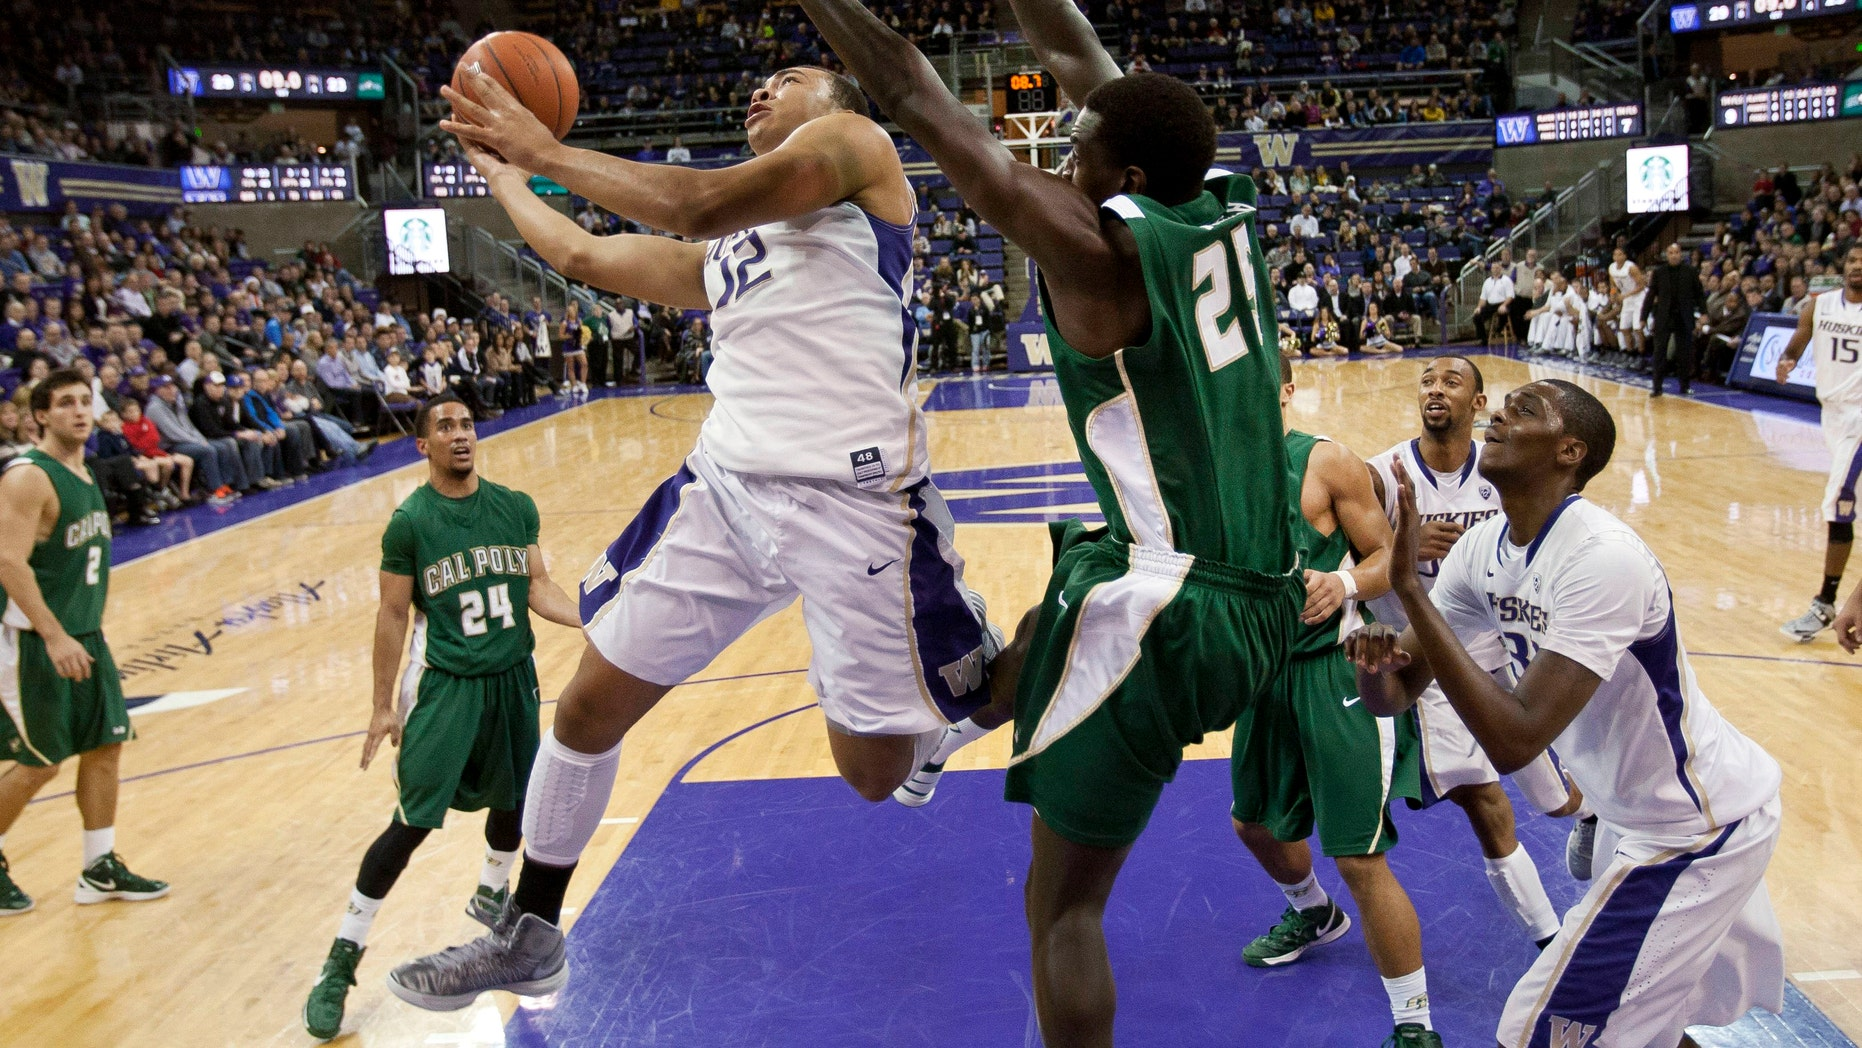 Washington's Andrew Andrews slides around Cal Poly's Joel Awich to score during the first half of an NCAA college basketball game, Thursday, Dec. 20, 2012, in Seattle. (AP Photo/The Seattle Times, Dean Rutz) MAGS OUT; NO SALES; SEATTLEPI.COM OUT; MANDATORY CREDIT.